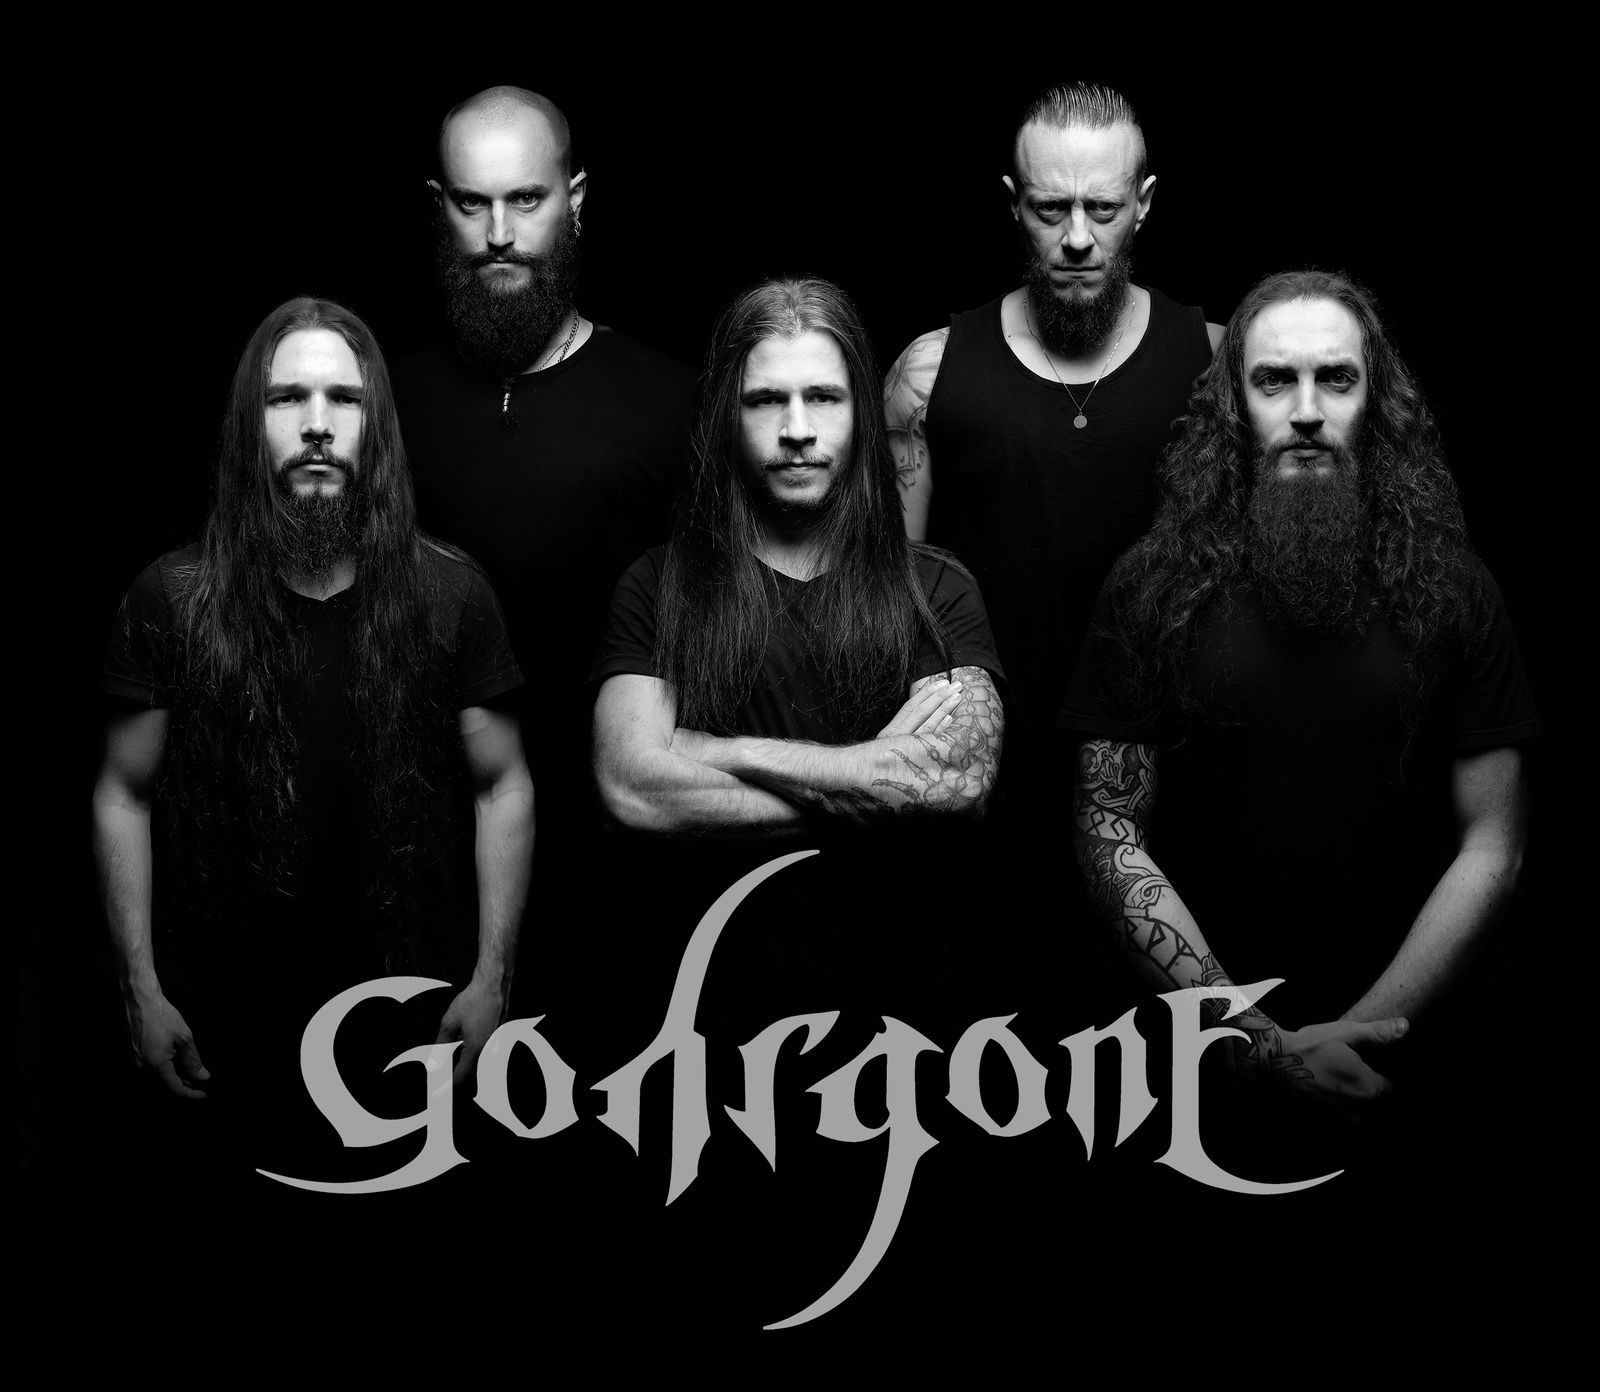 Interview avec GOHRGONE